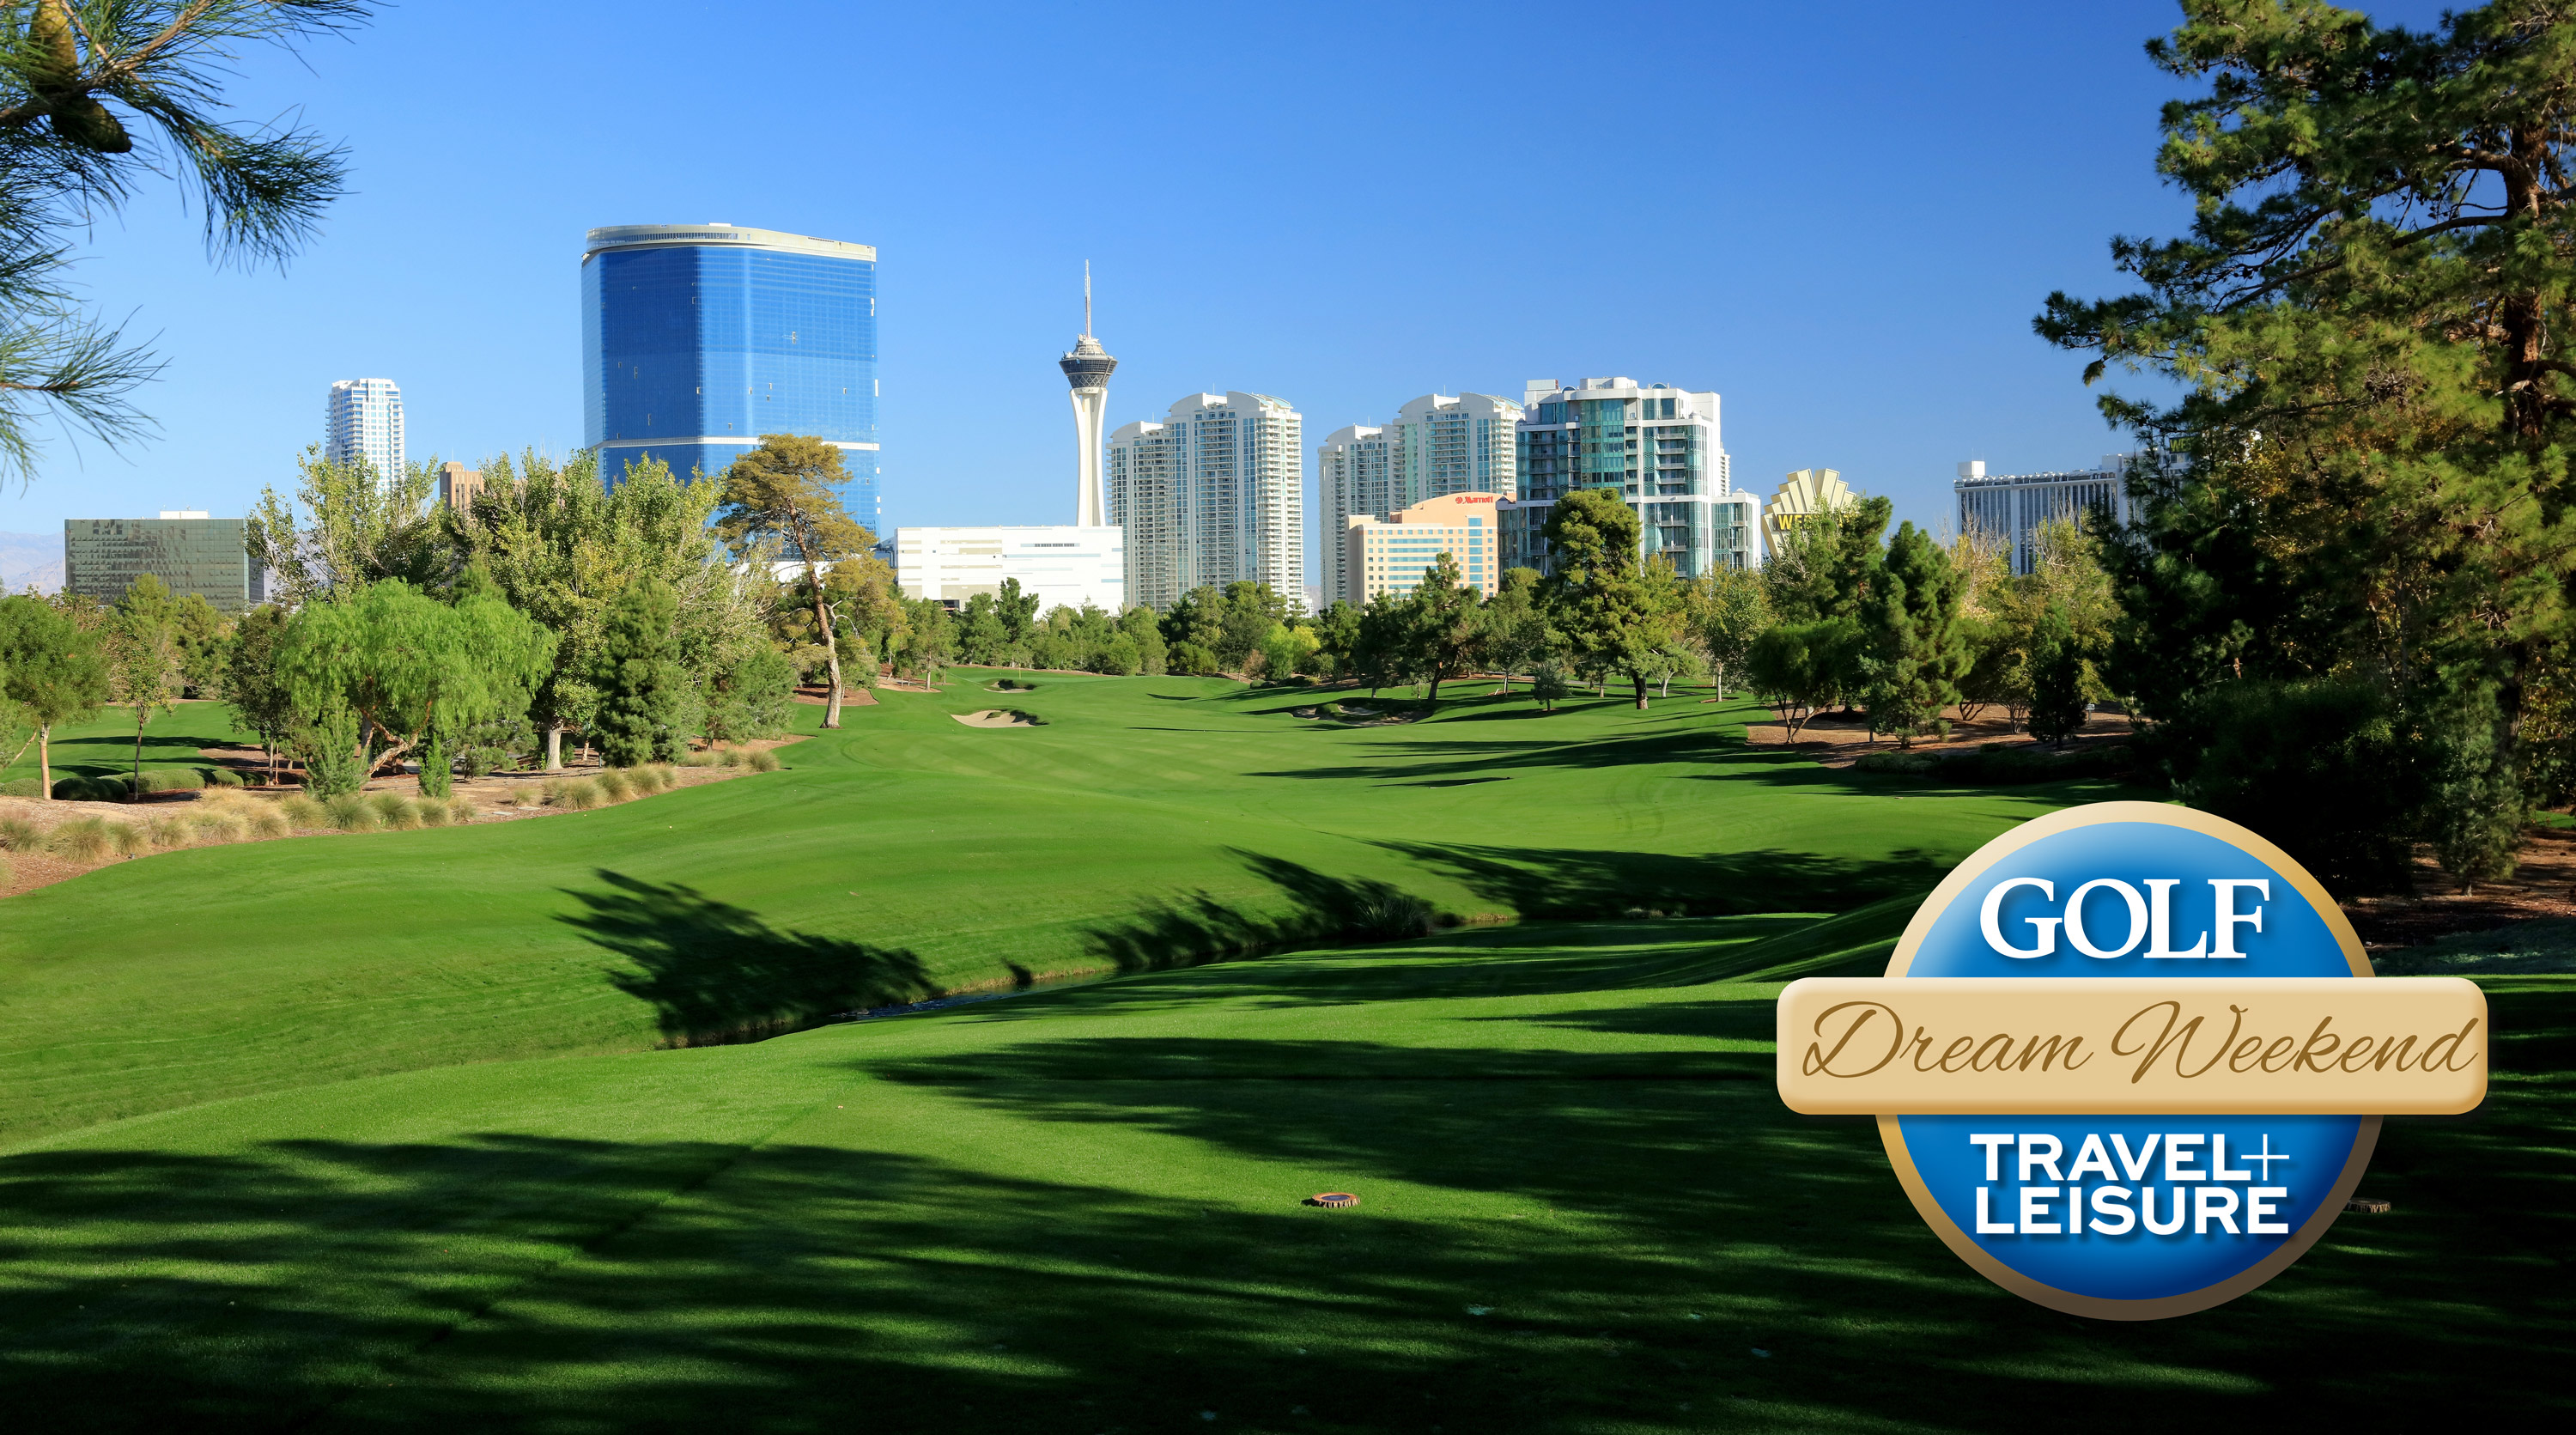 The 449 yards par 4, fourth hole at the Wynn Golf Club in Las Vegas.